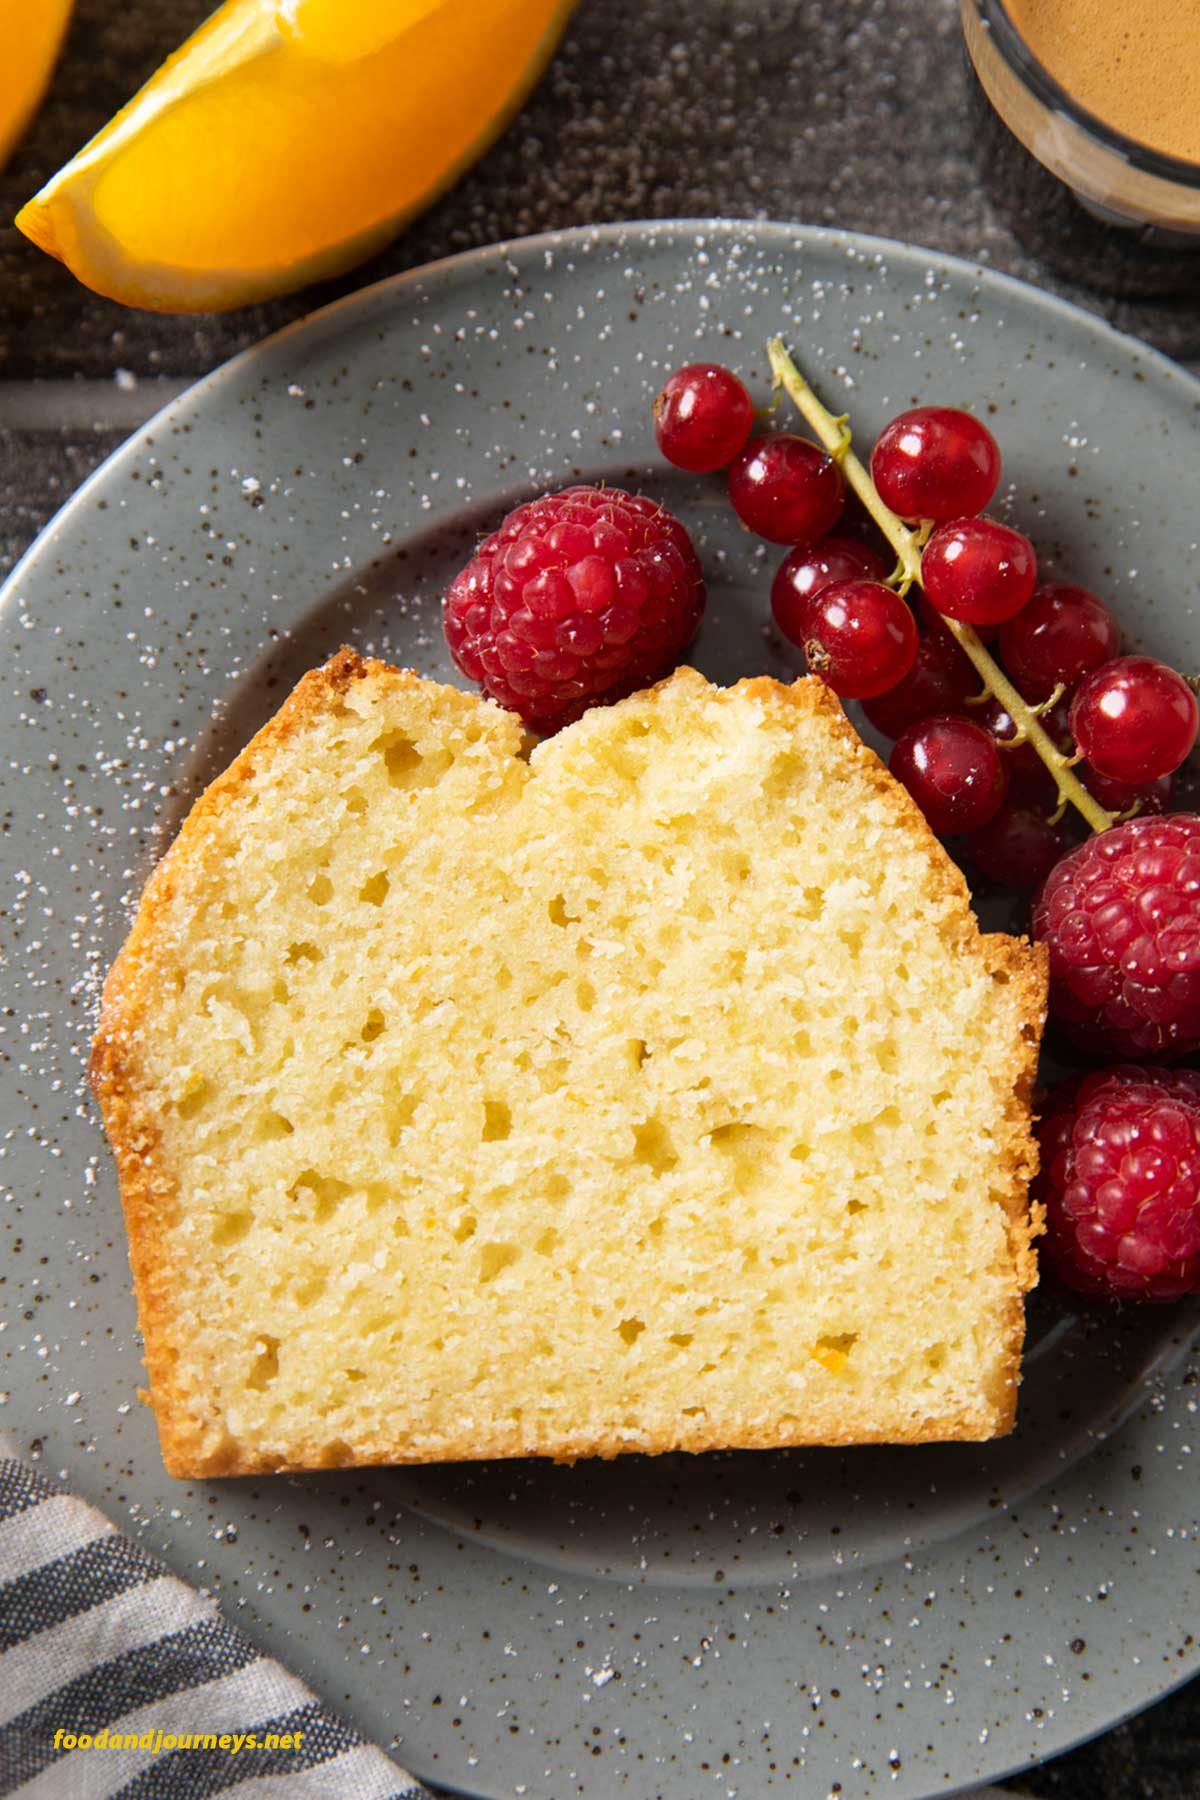 An overhead shot of a slice of orange yogurt cake, served with some berries.